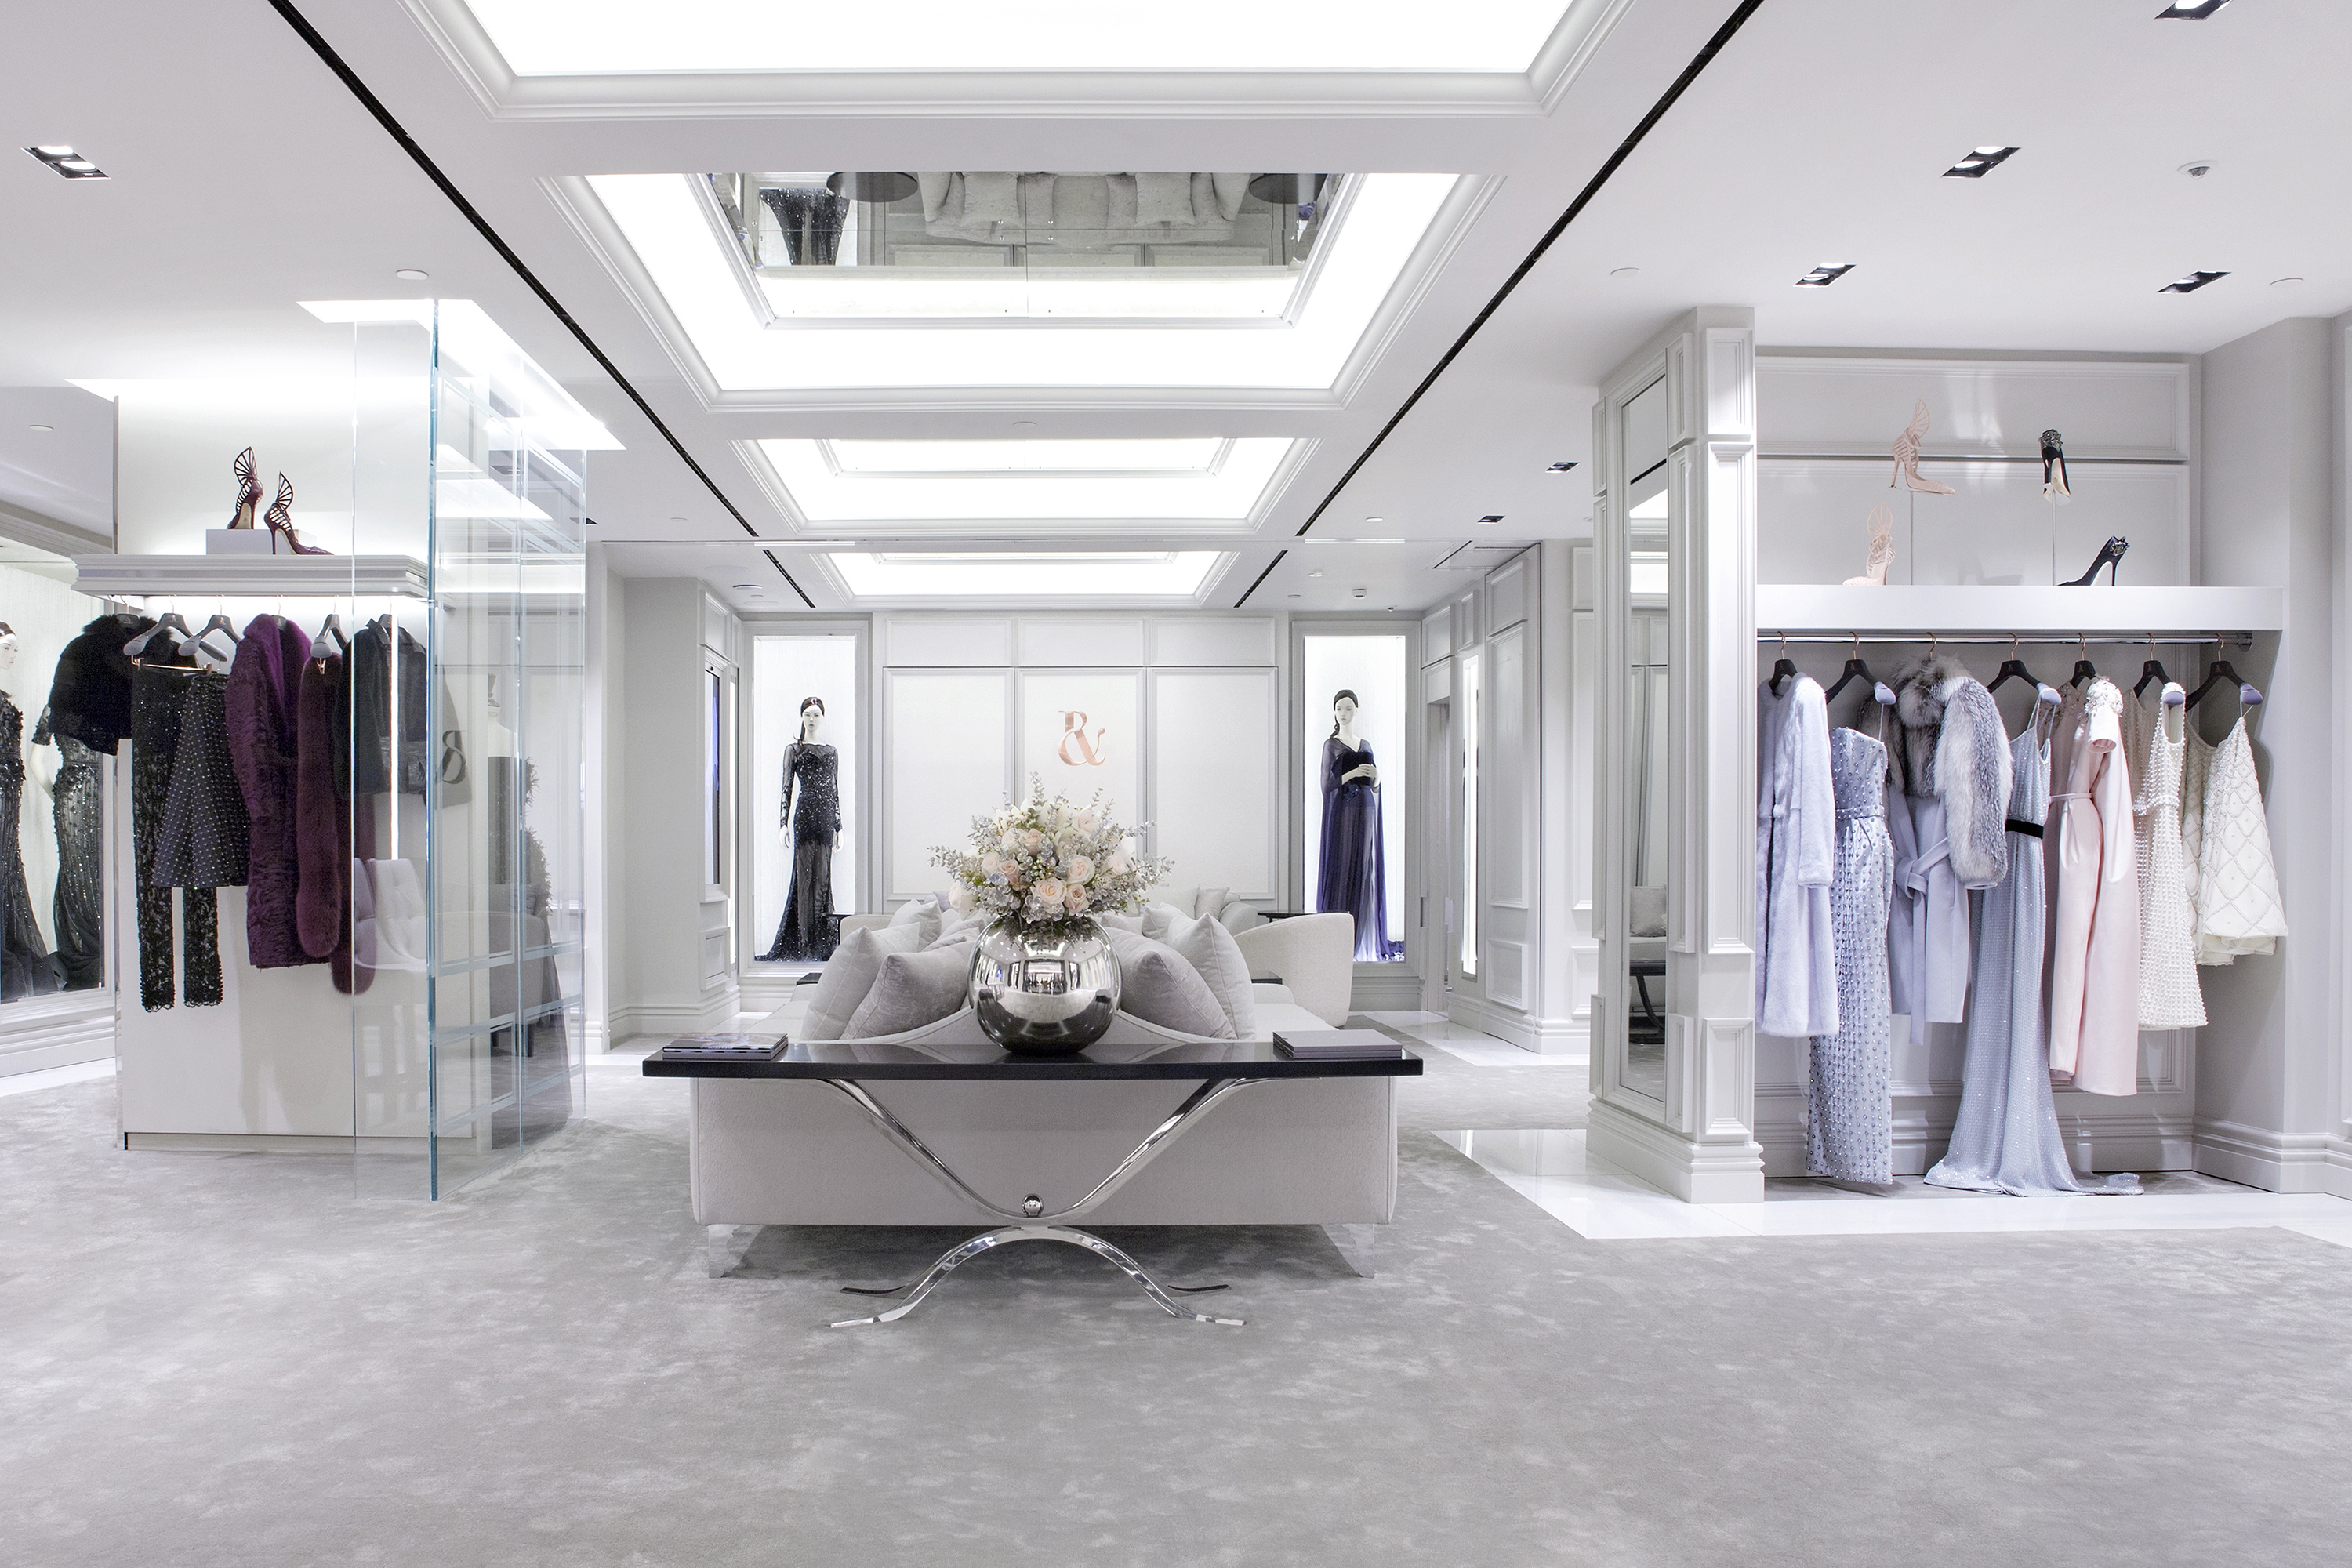 File:Ralph & Russo Harrods Boutique.jpg - Wikimedia Commons